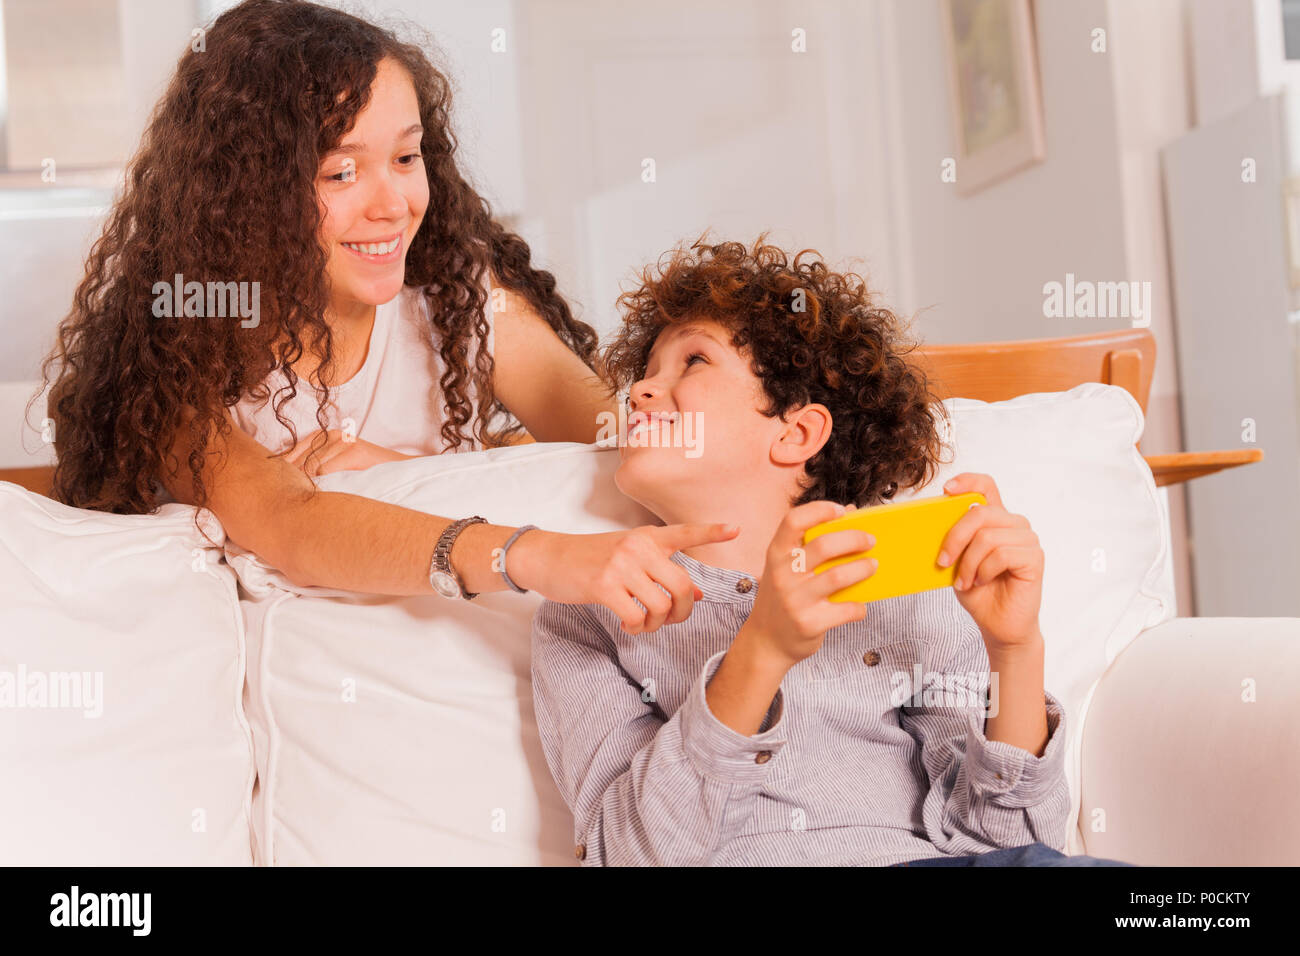 Portrait of teenage boy and girl chatting using cell phone, sitting on coach in light living room - Stock Image